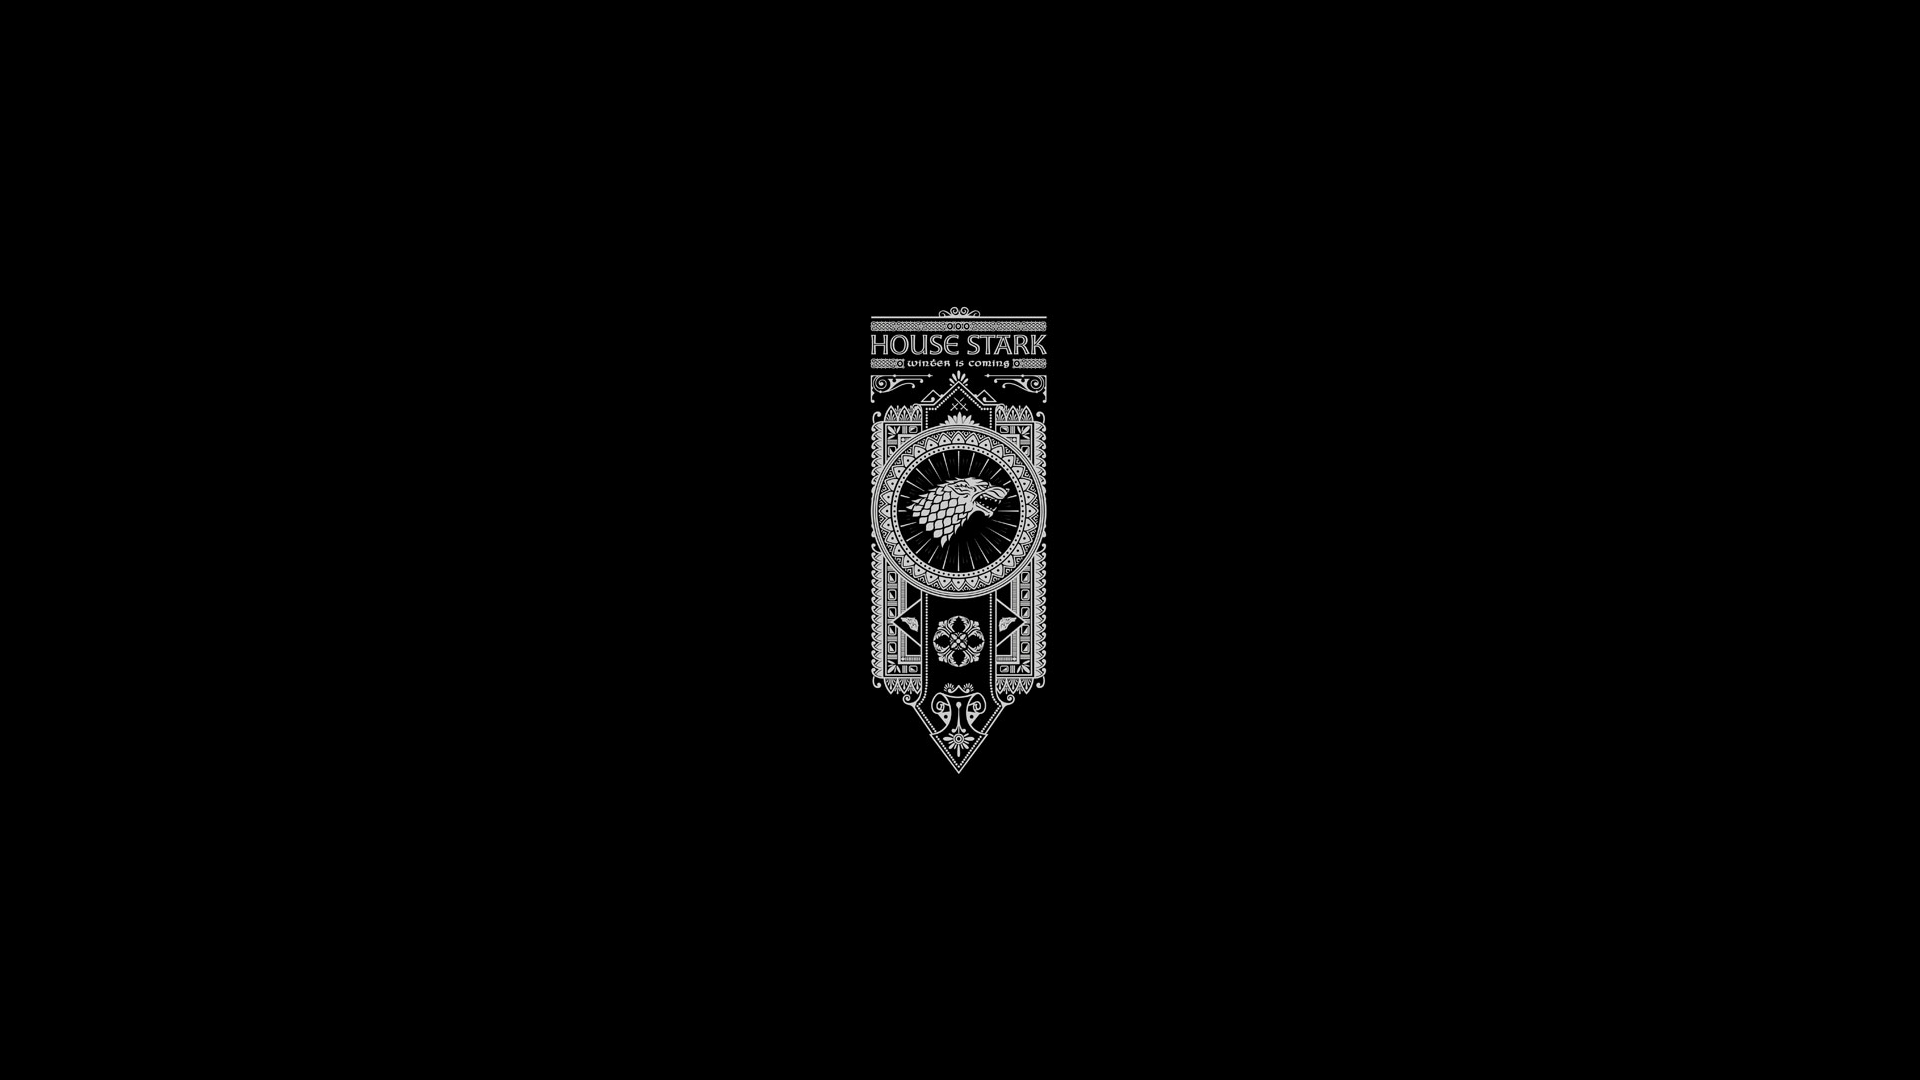 Game Of Thrones Minimalist Wallpapers Top Free Game Of Thrones Minimalist Backgrounds Wallp Minimalist Wallpaper Black Wallpaper Winter Is Coming Wallpaper